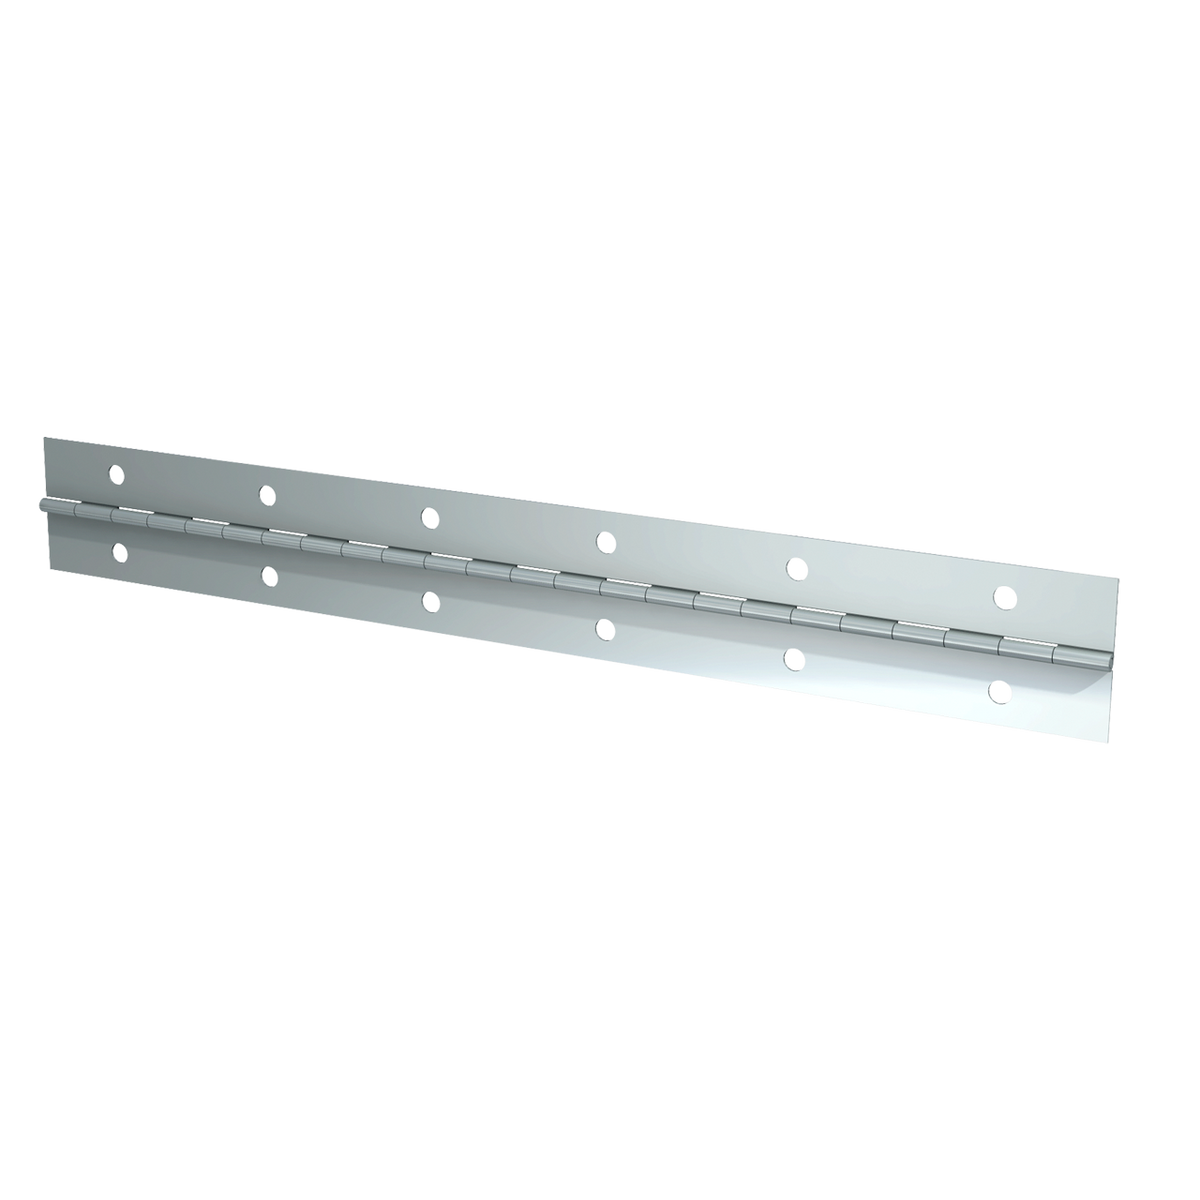 "Steel Continuous Hinge - 0.03"" x 1.5"" x 72"" with Zinc Plate & Mounting Holes"